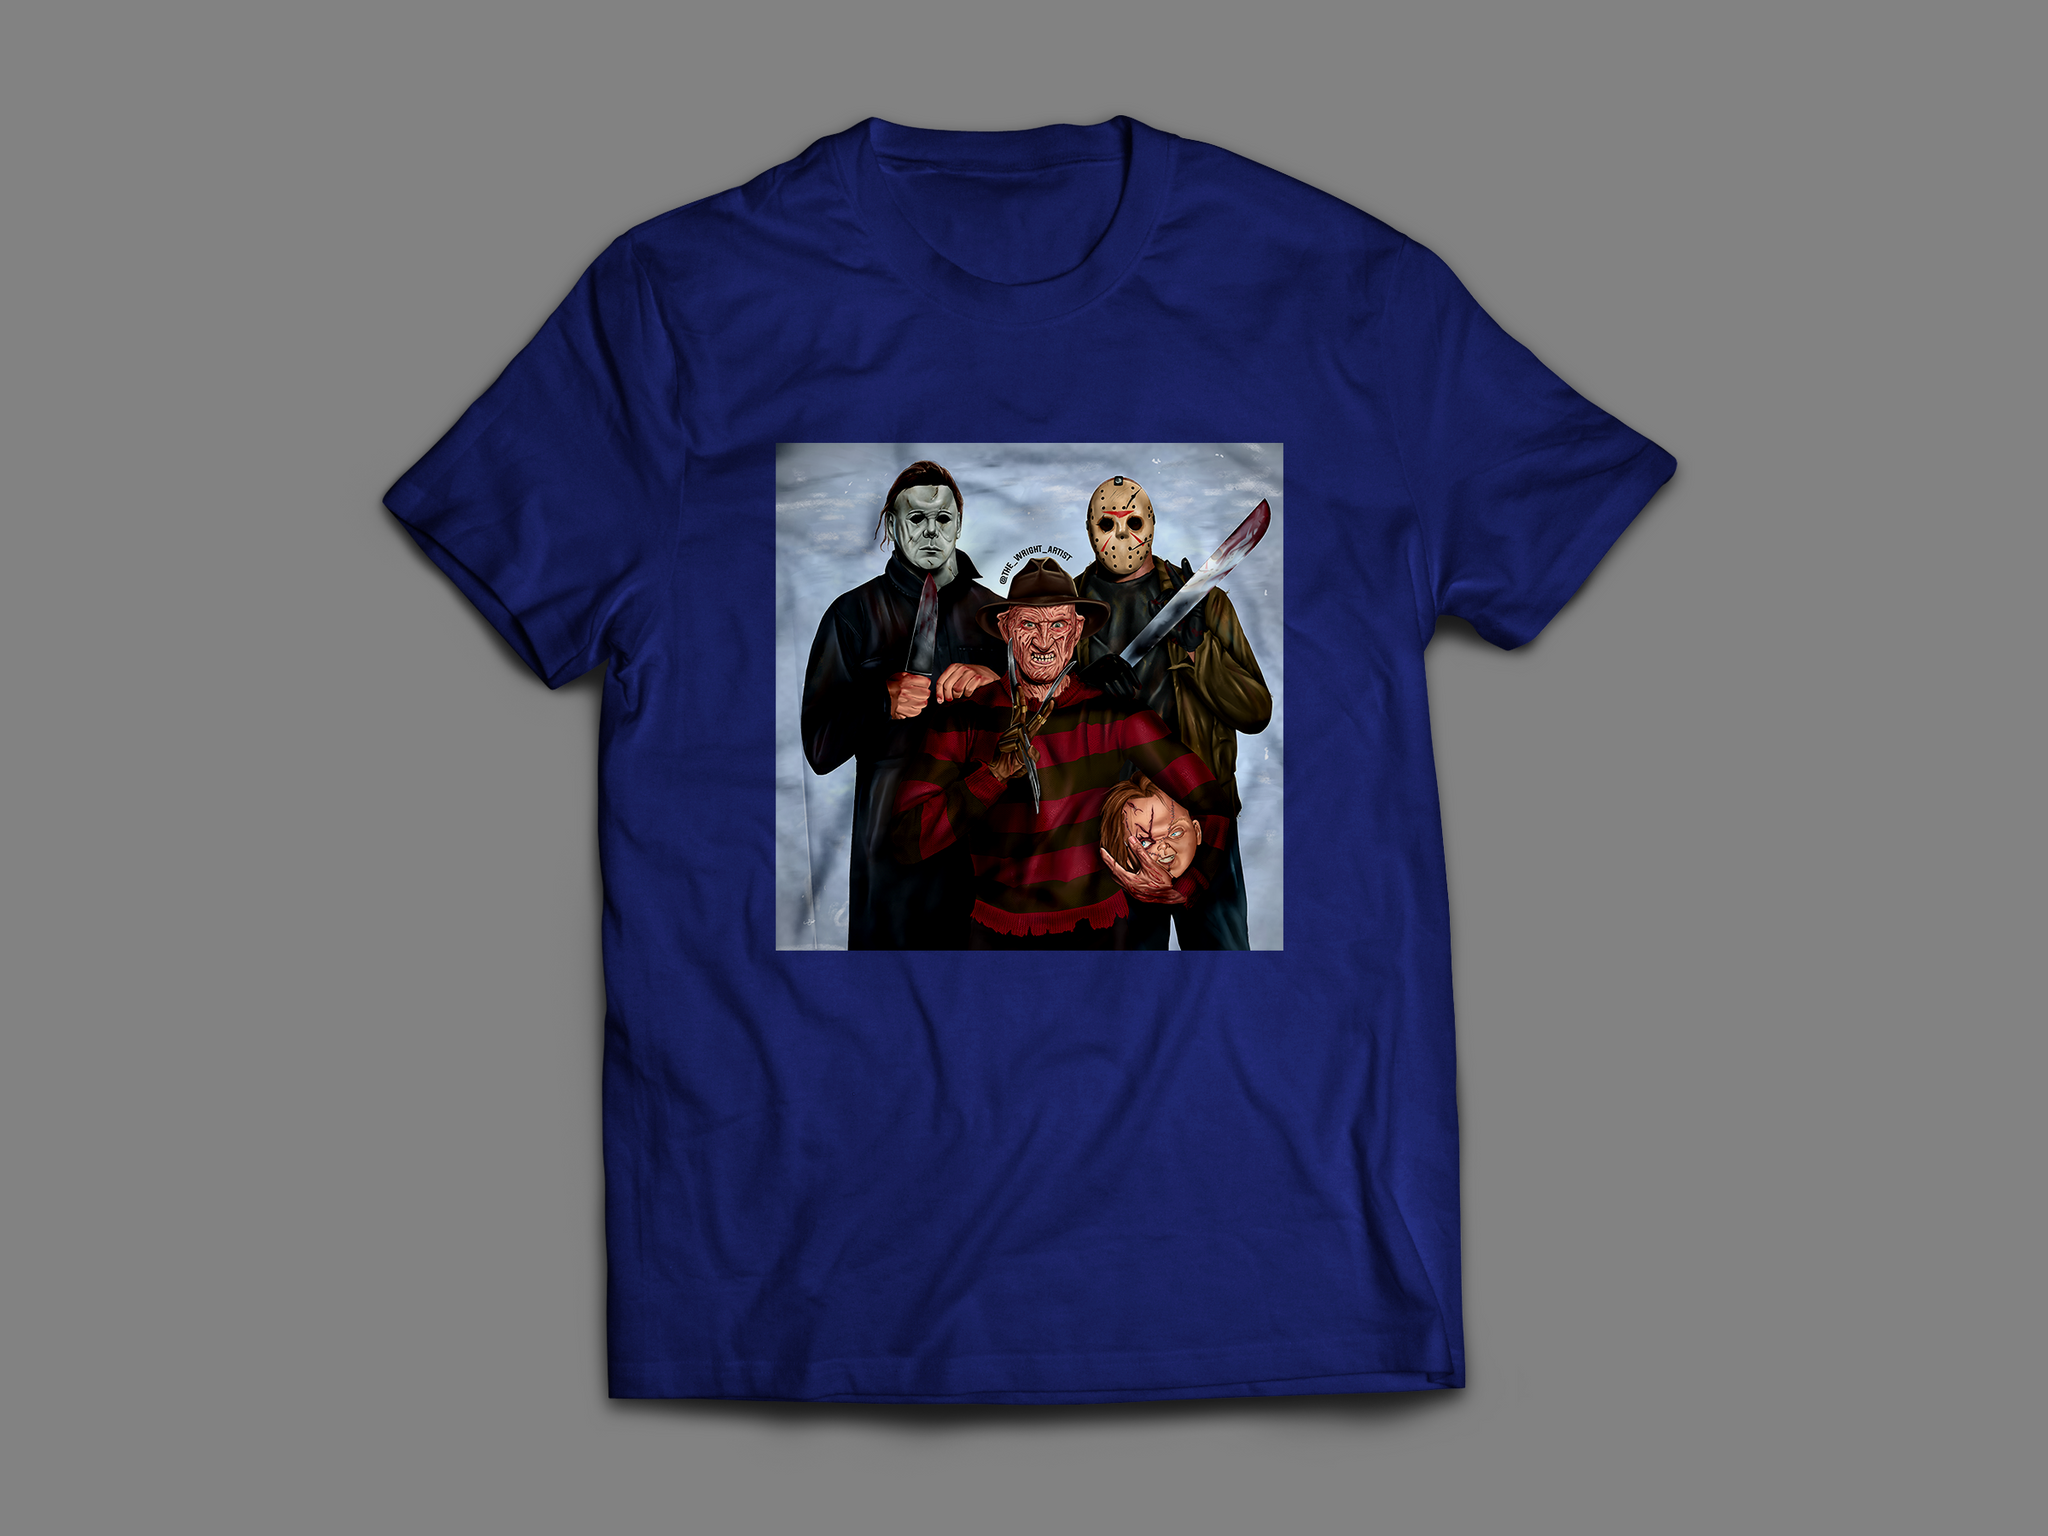 'The Terror Team' T-Shirt